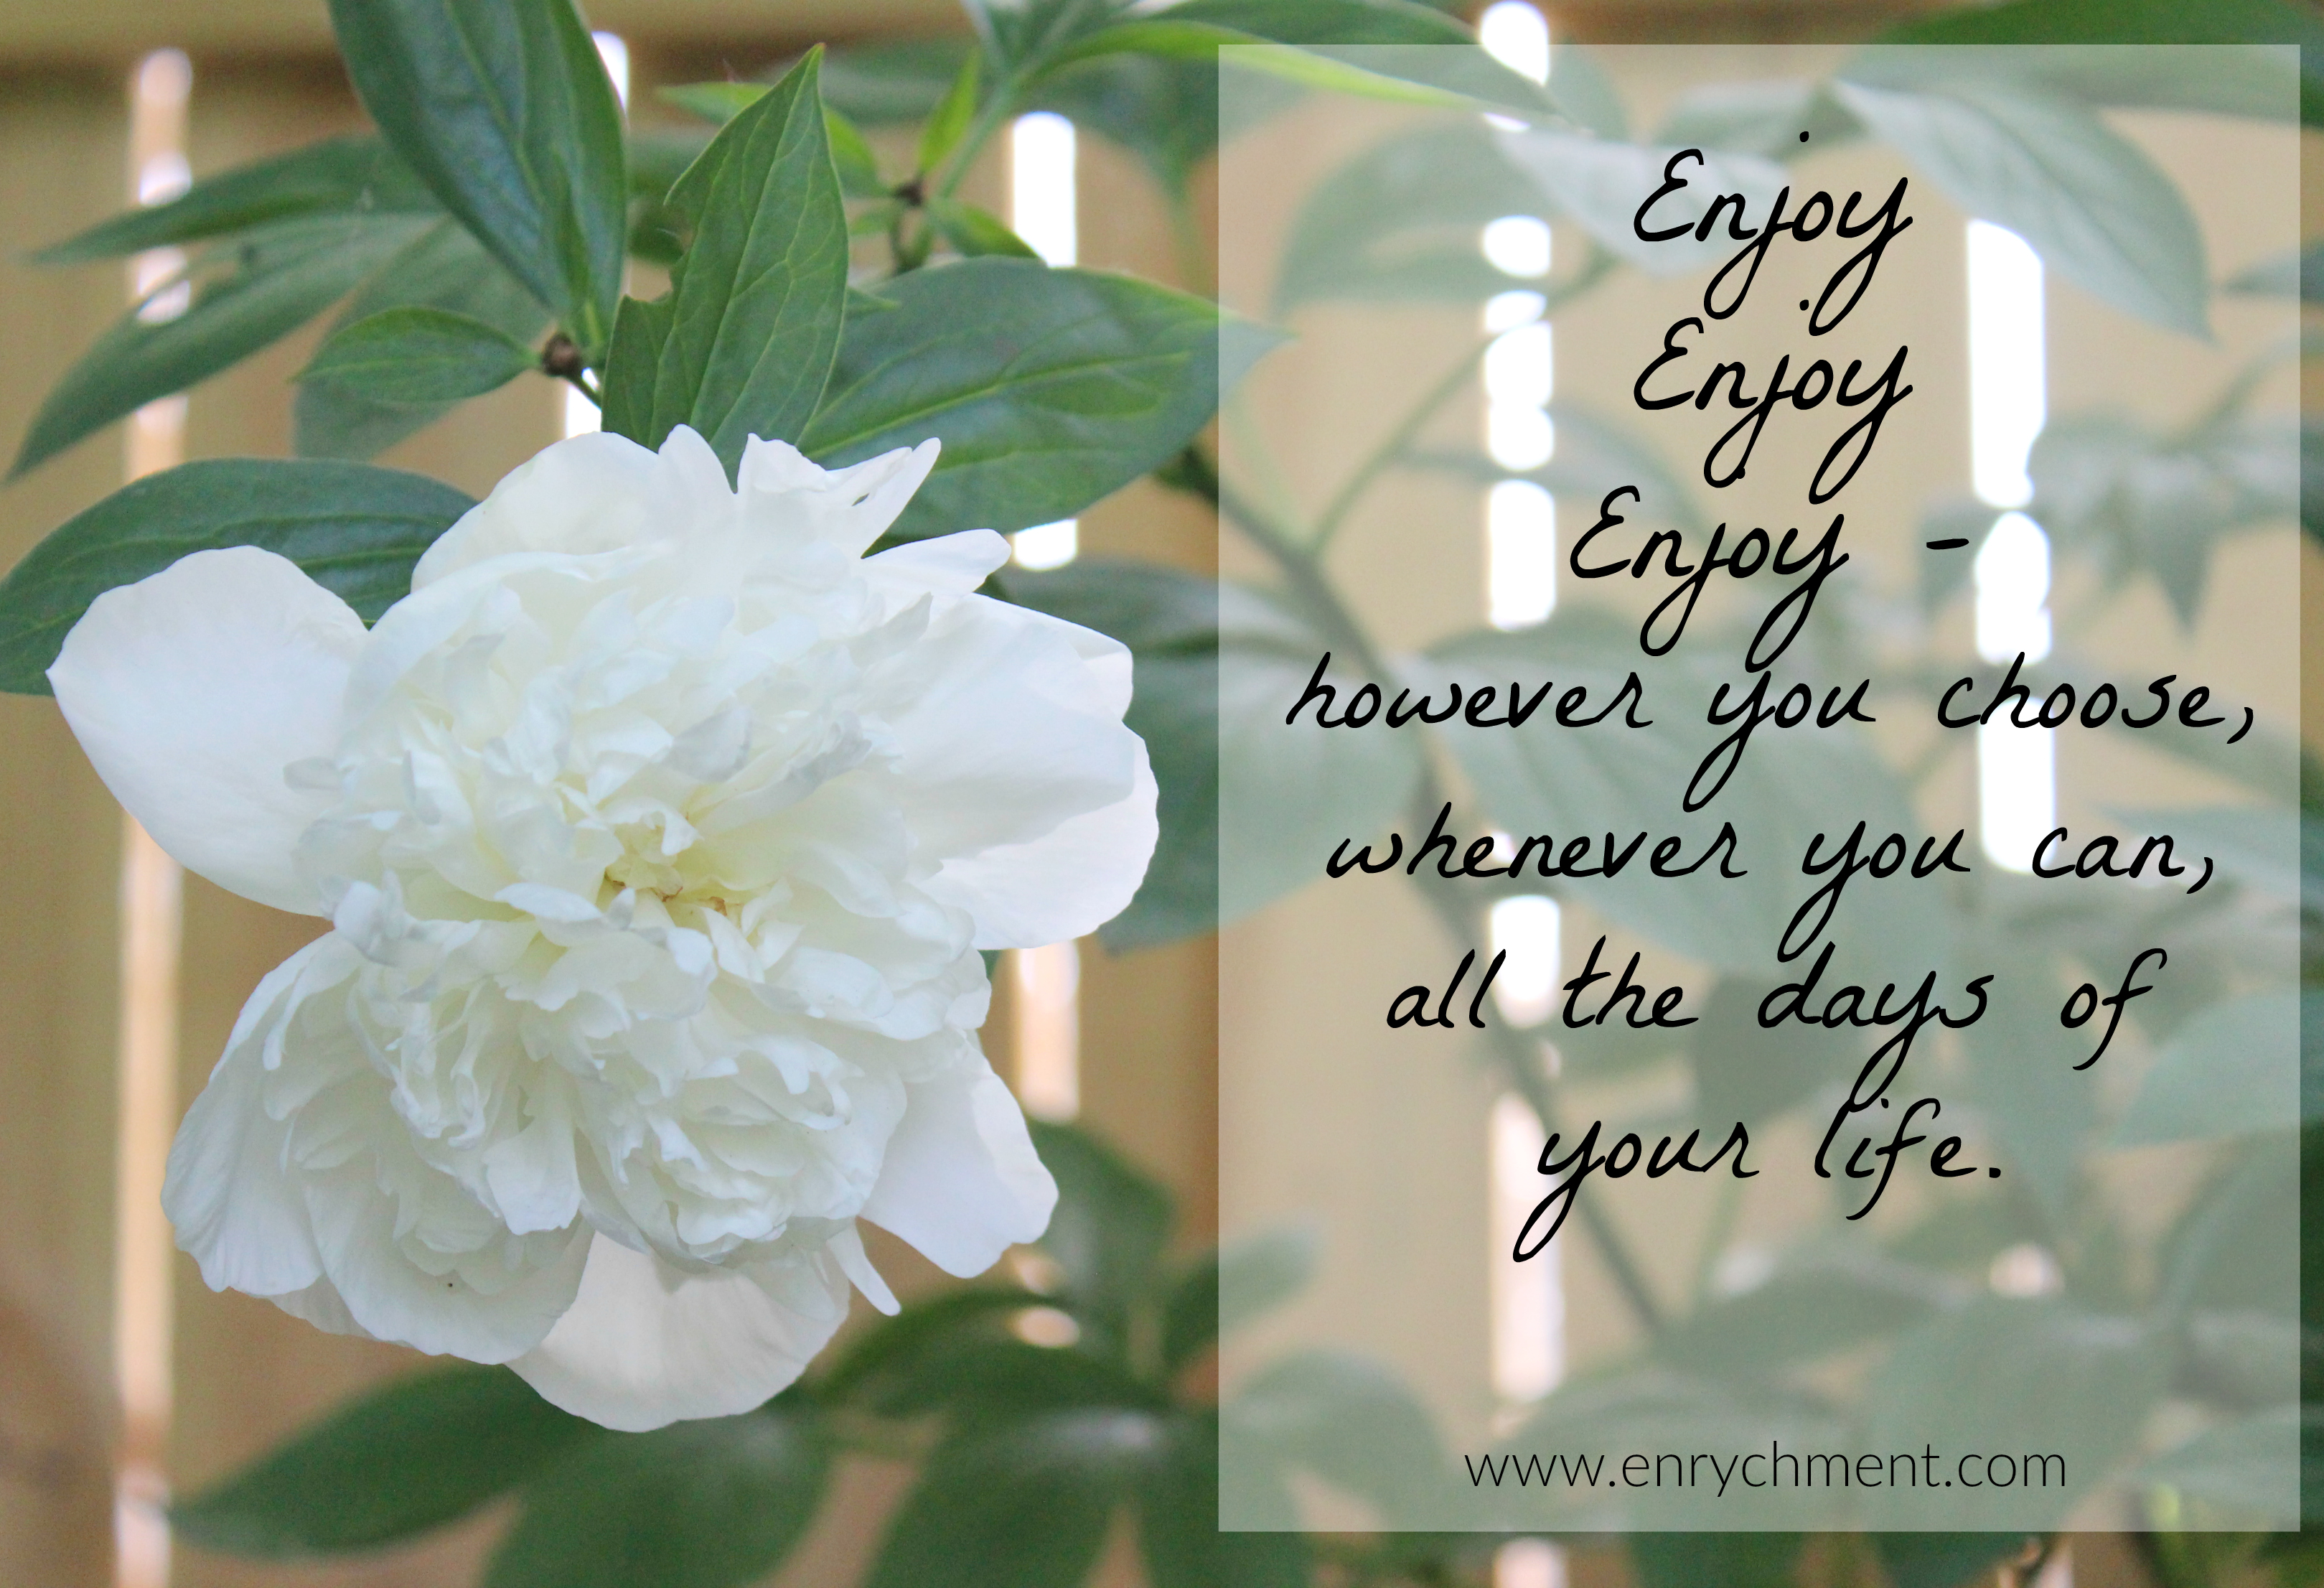 Enjoy enjoy enjoy, however you choose, whenever you can, all the days of your life.